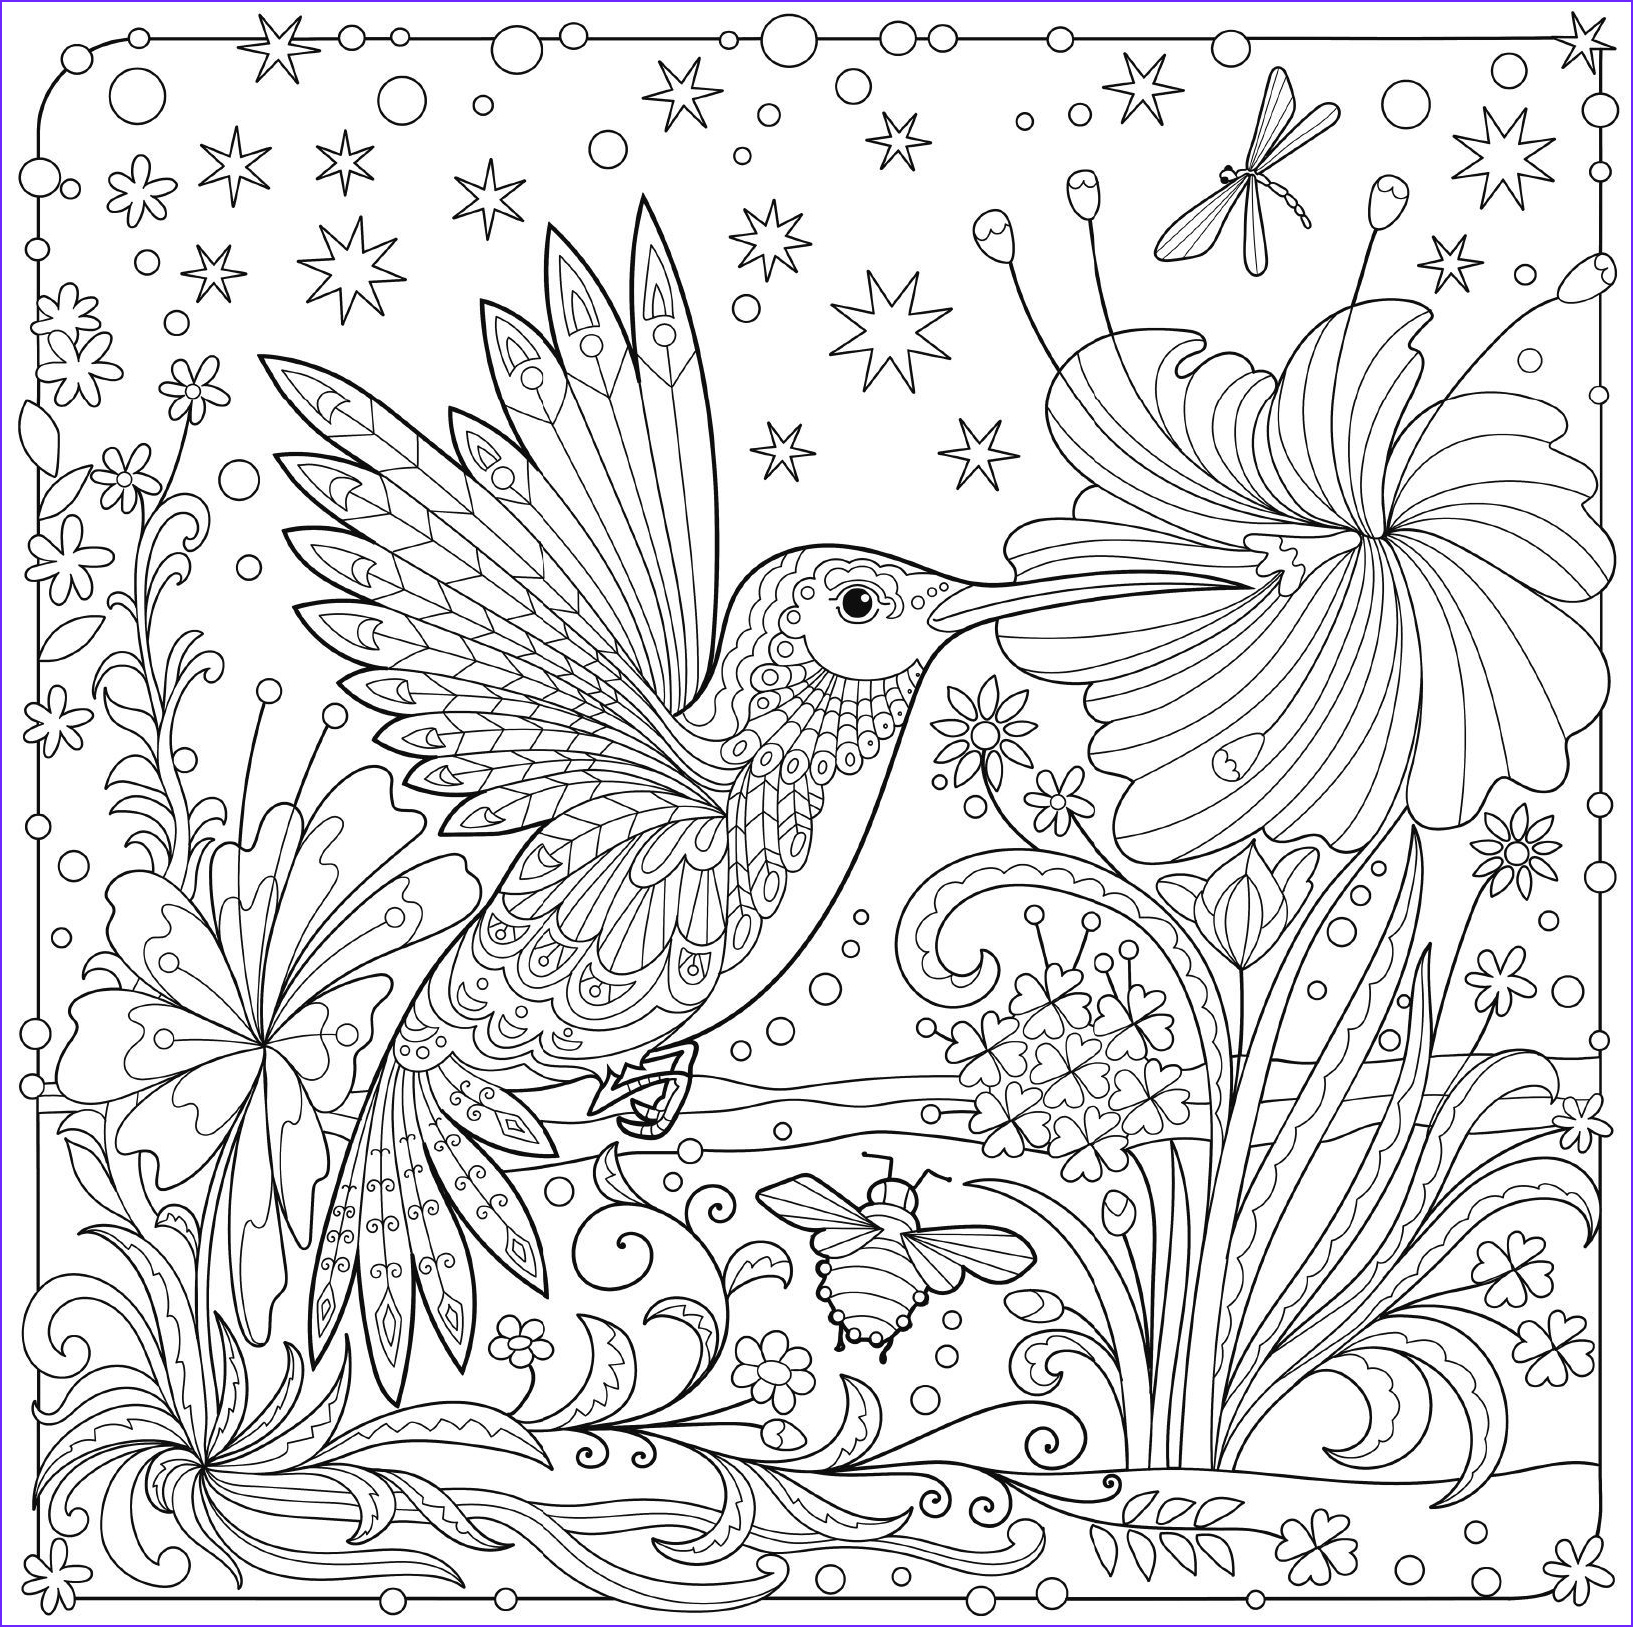 Hummingbird Coloring Pages for Adults New Stock Hummingbird Colouring Page